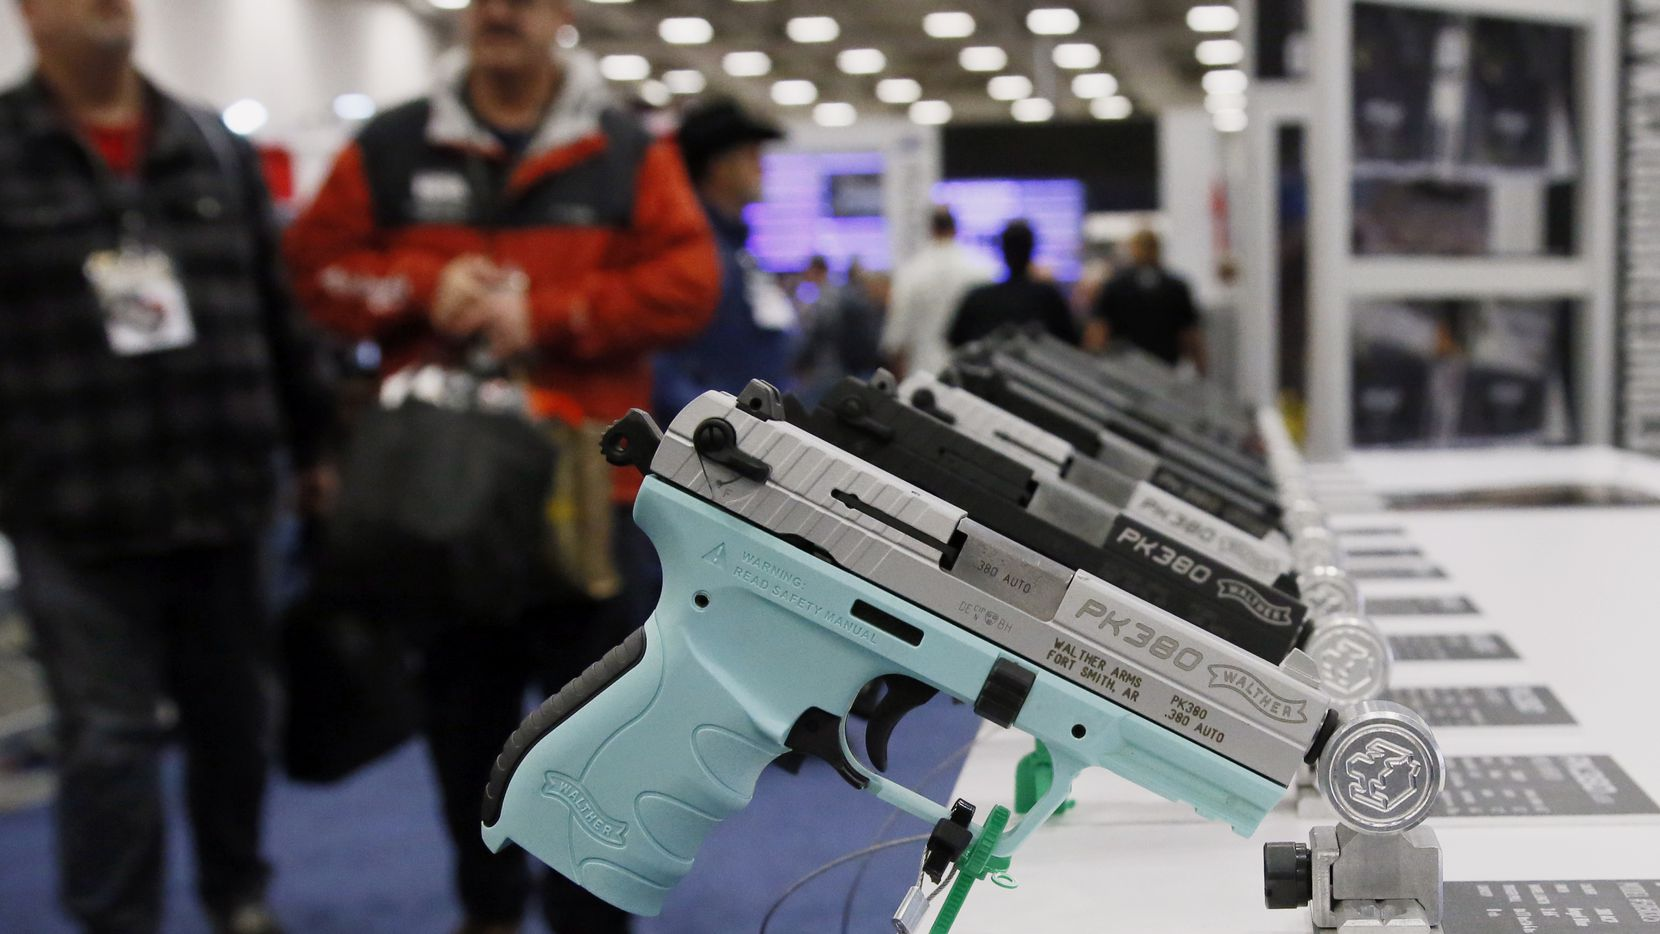 FILE - In this May 4, 2018, file photo, handguns are on display at the The National Rifle Association convention in Dallas. Texas is edging closer to becoming the largest state in the country to allow people to carry handguns without a license. (AP Photo/Sue Ogrocki, File)